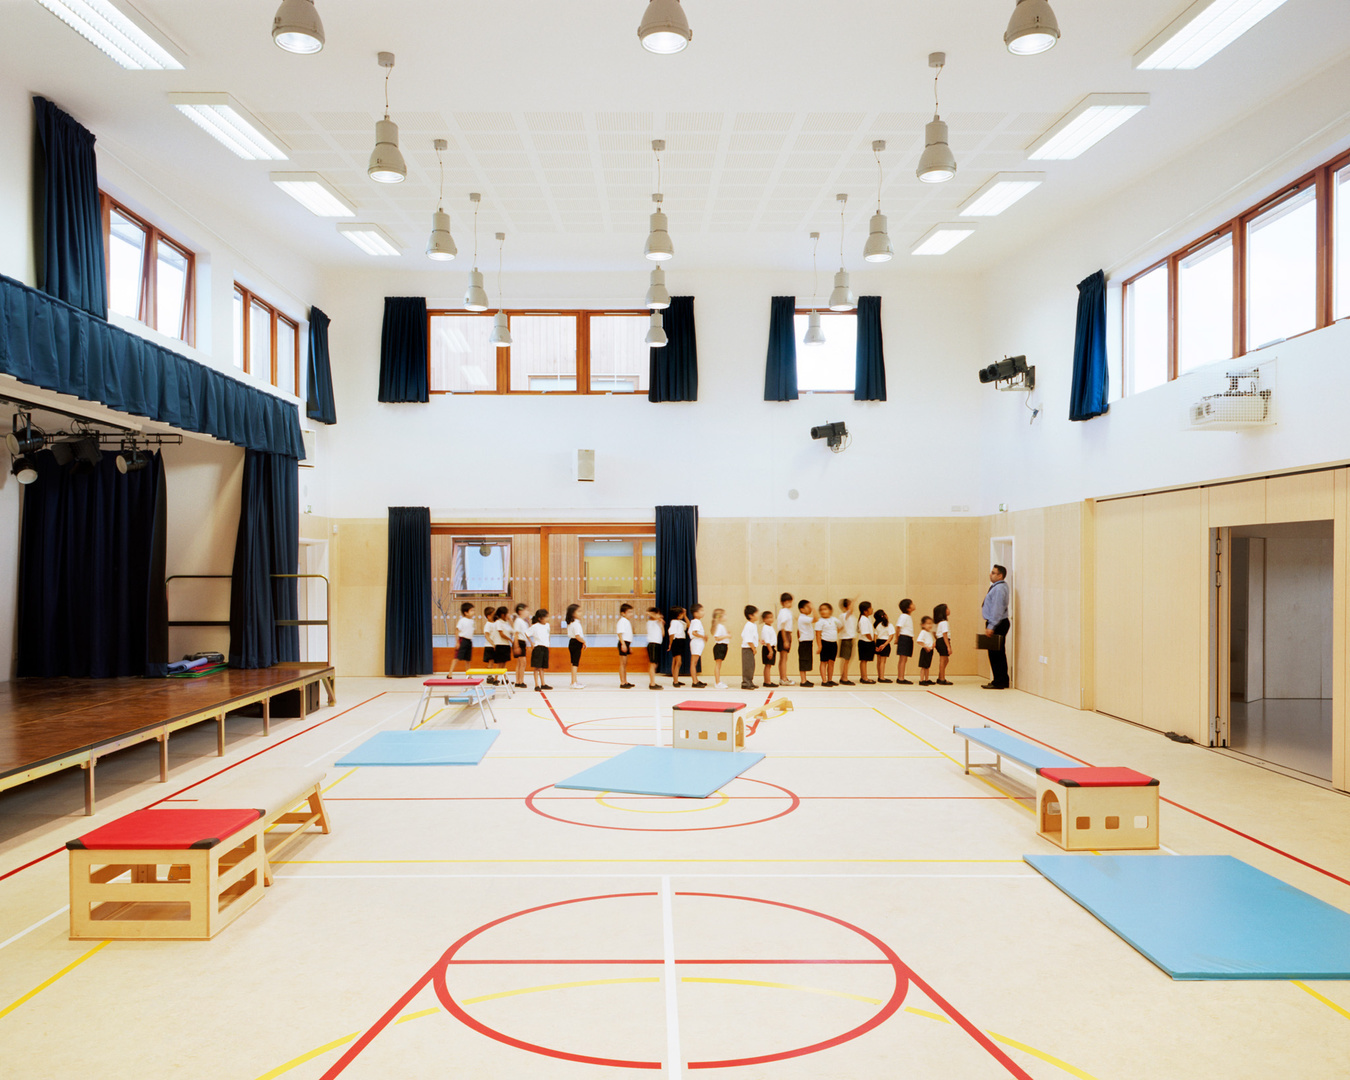 Krishna Avanti Primary School. Cottrell and Vermeulen Architects.